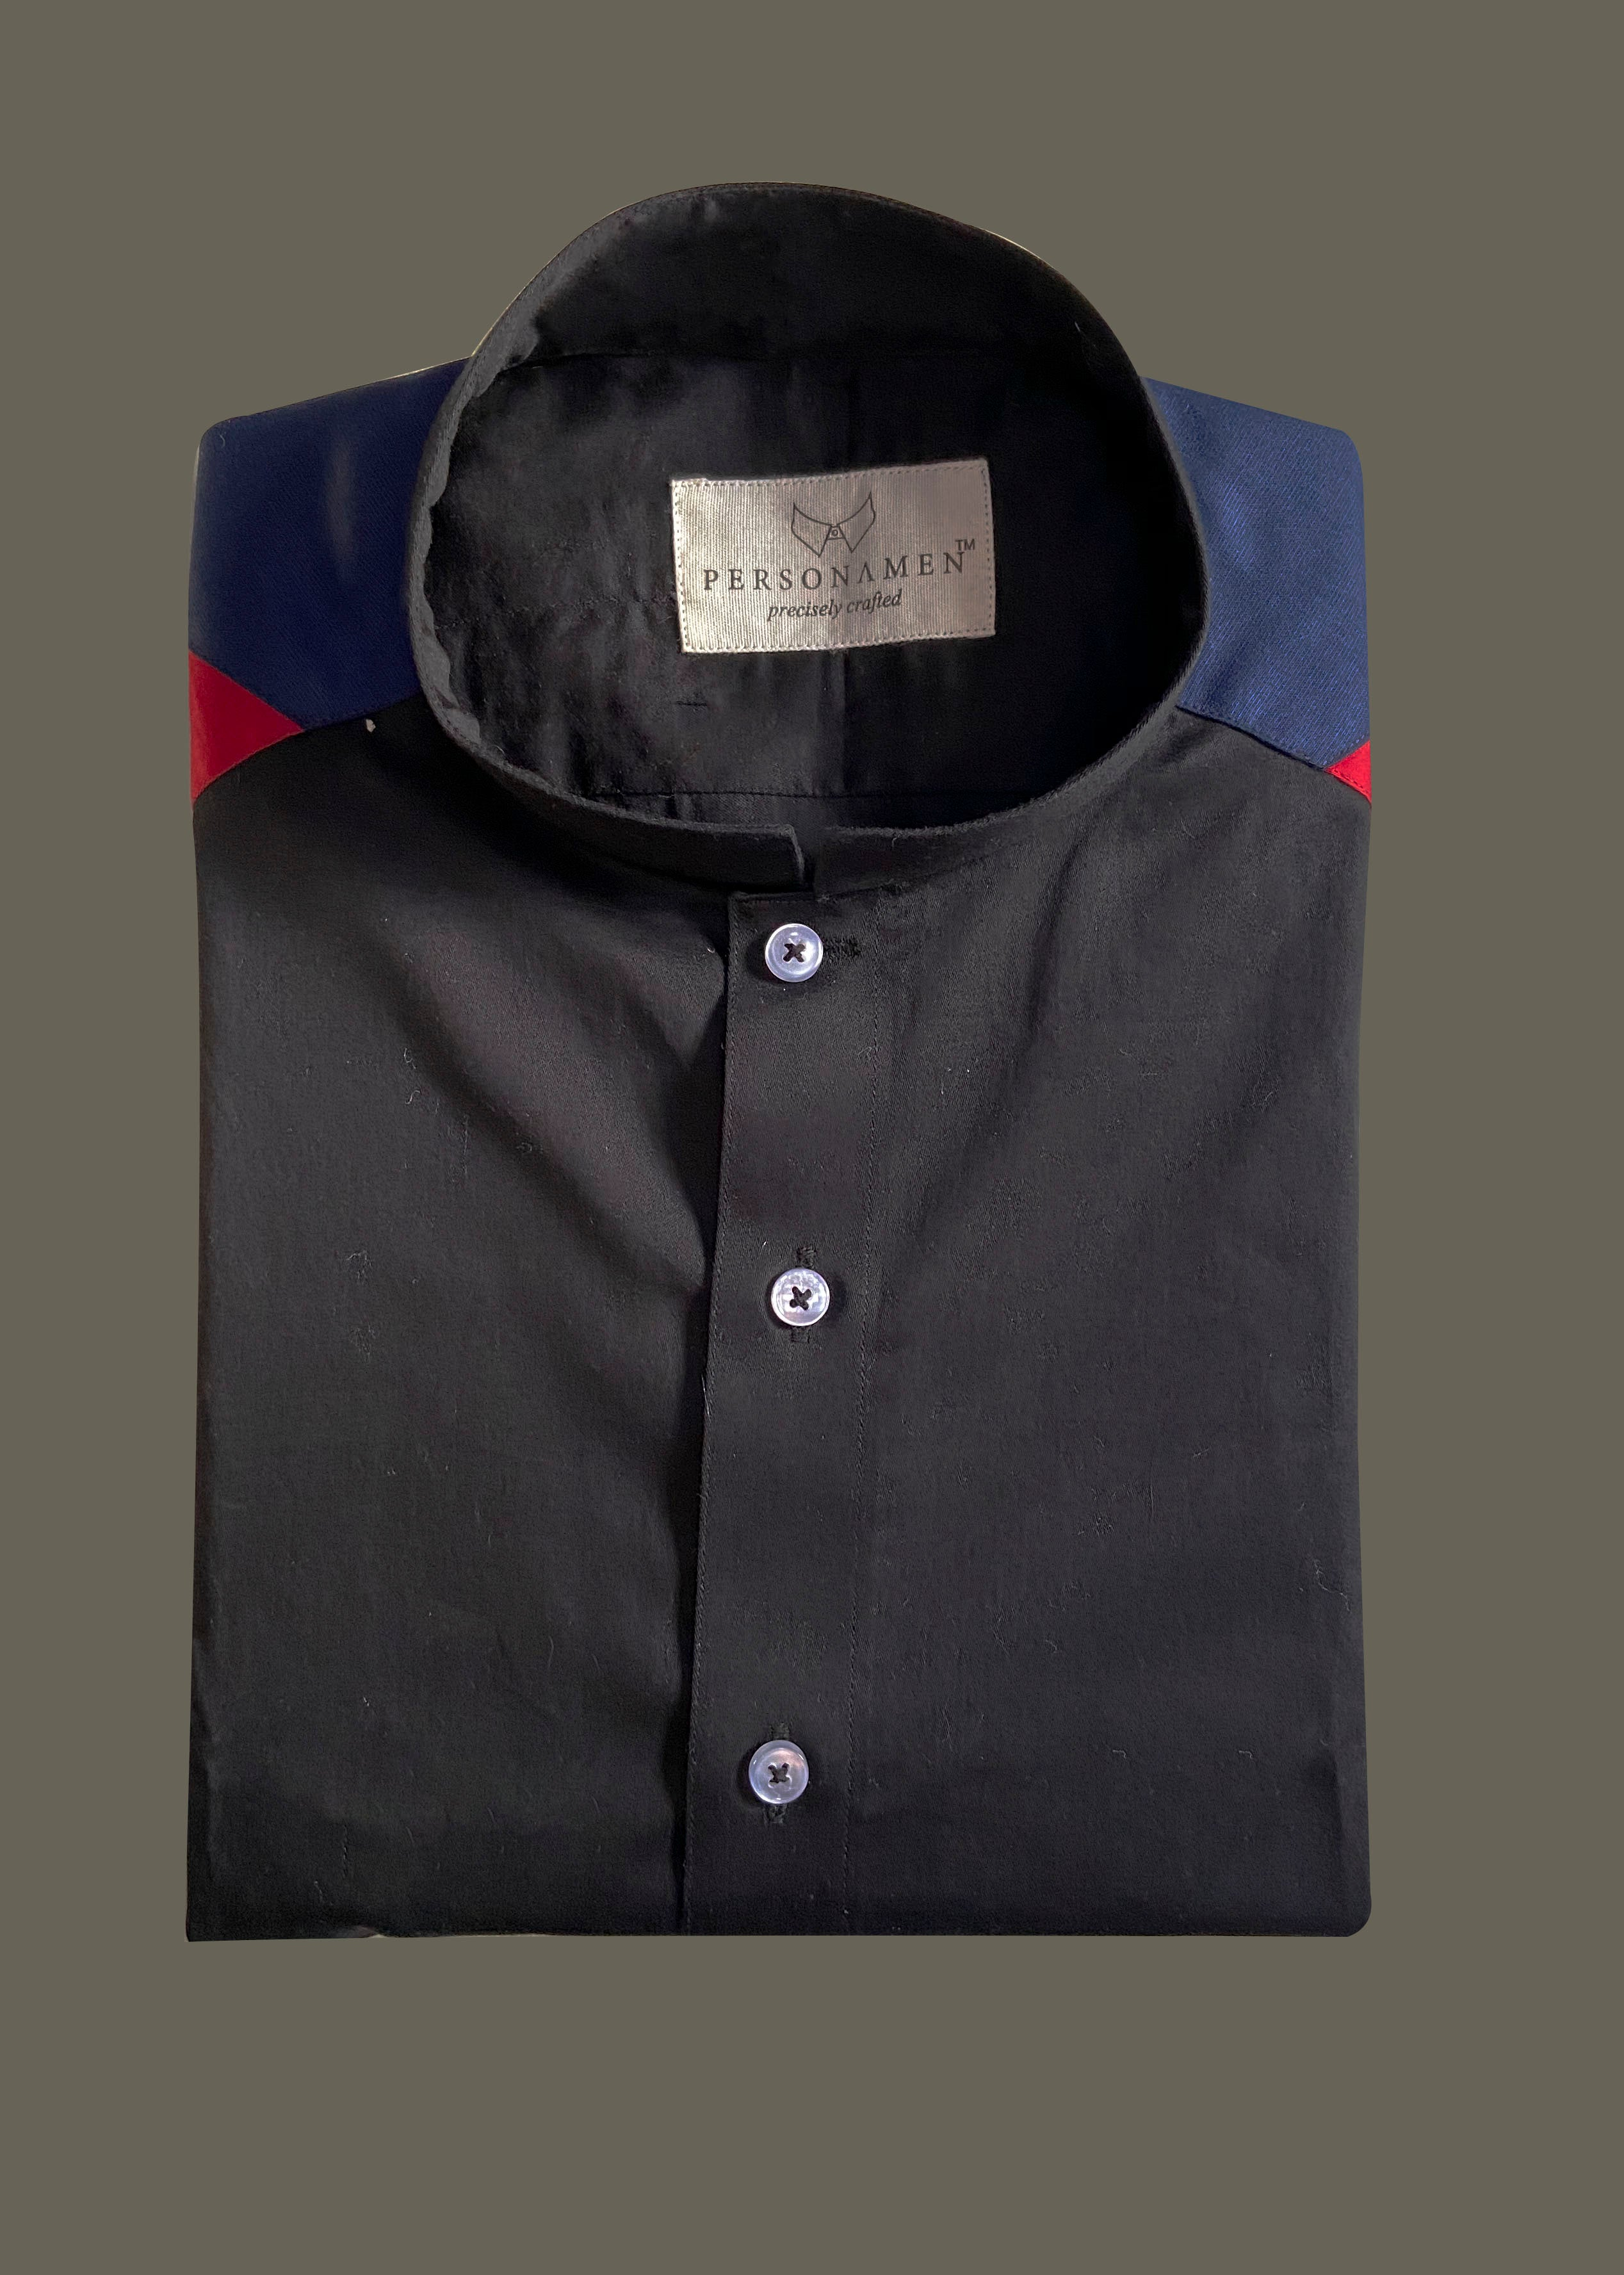 A perfect pick for your casual outing with friends pair this black casual shirt with indigo denims and white sneakers.